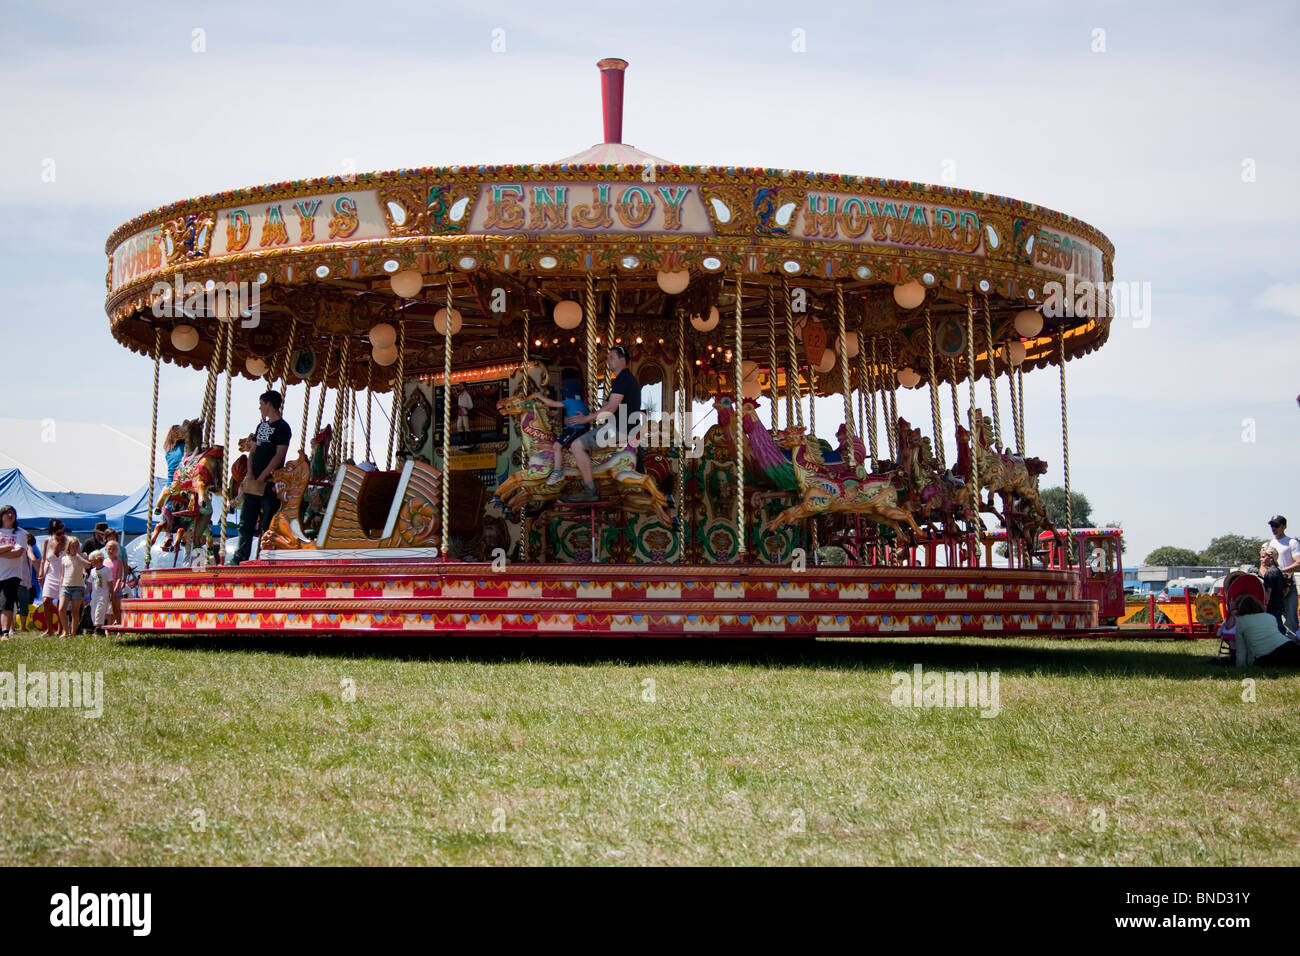 Carousel ride at Cheshire Show, Knutsford, England. - Stock Image